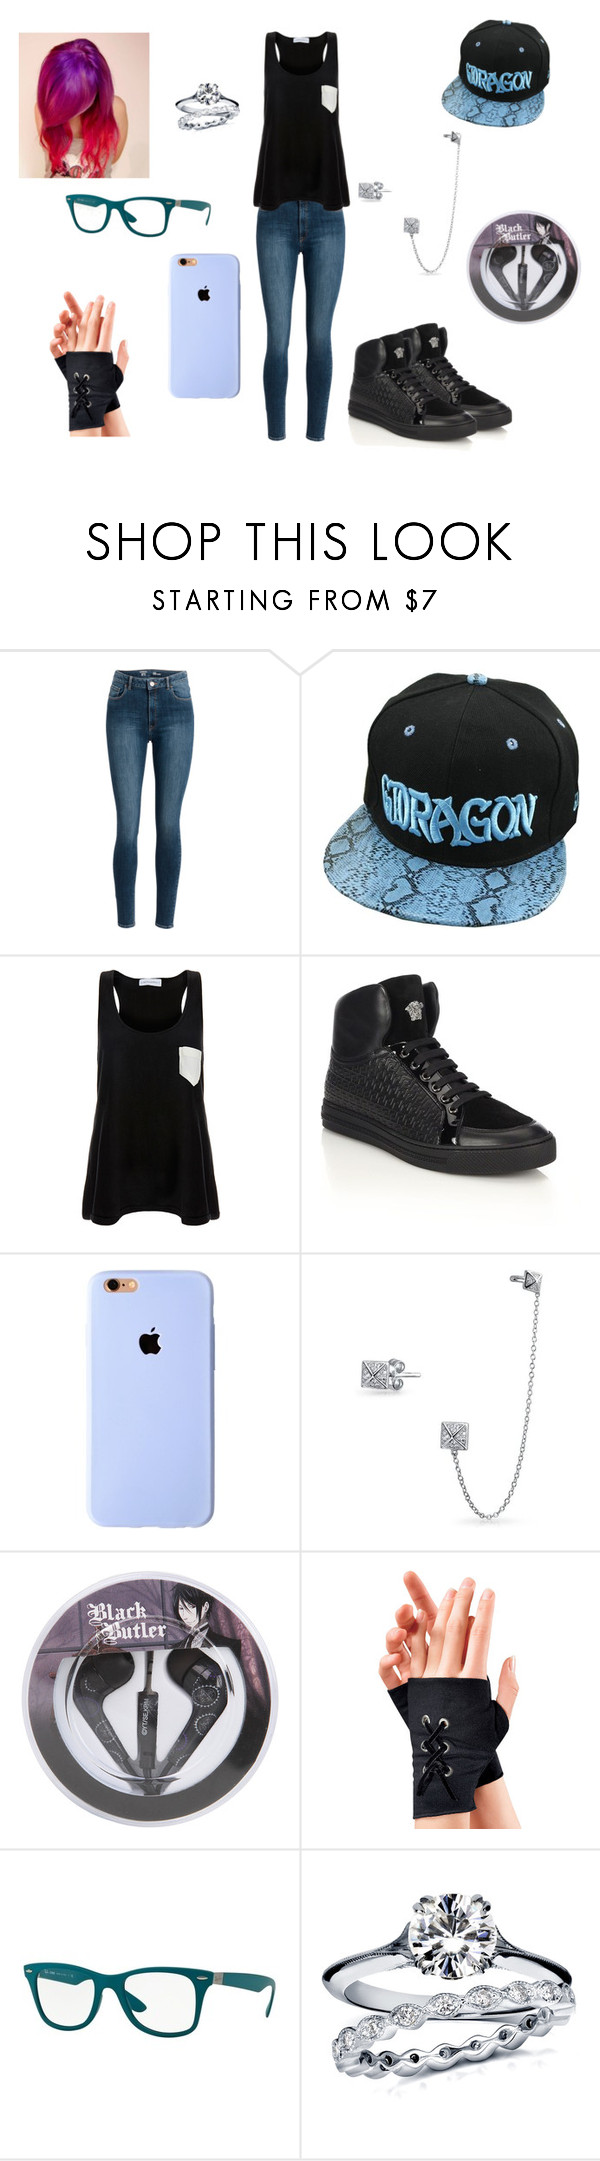 """""""Extra"""" by pokergirl77 ❤ liked on Polyvore featuring Solid & Striped, Versace, Bling Jewelry, Ray-Ban and Annello"""